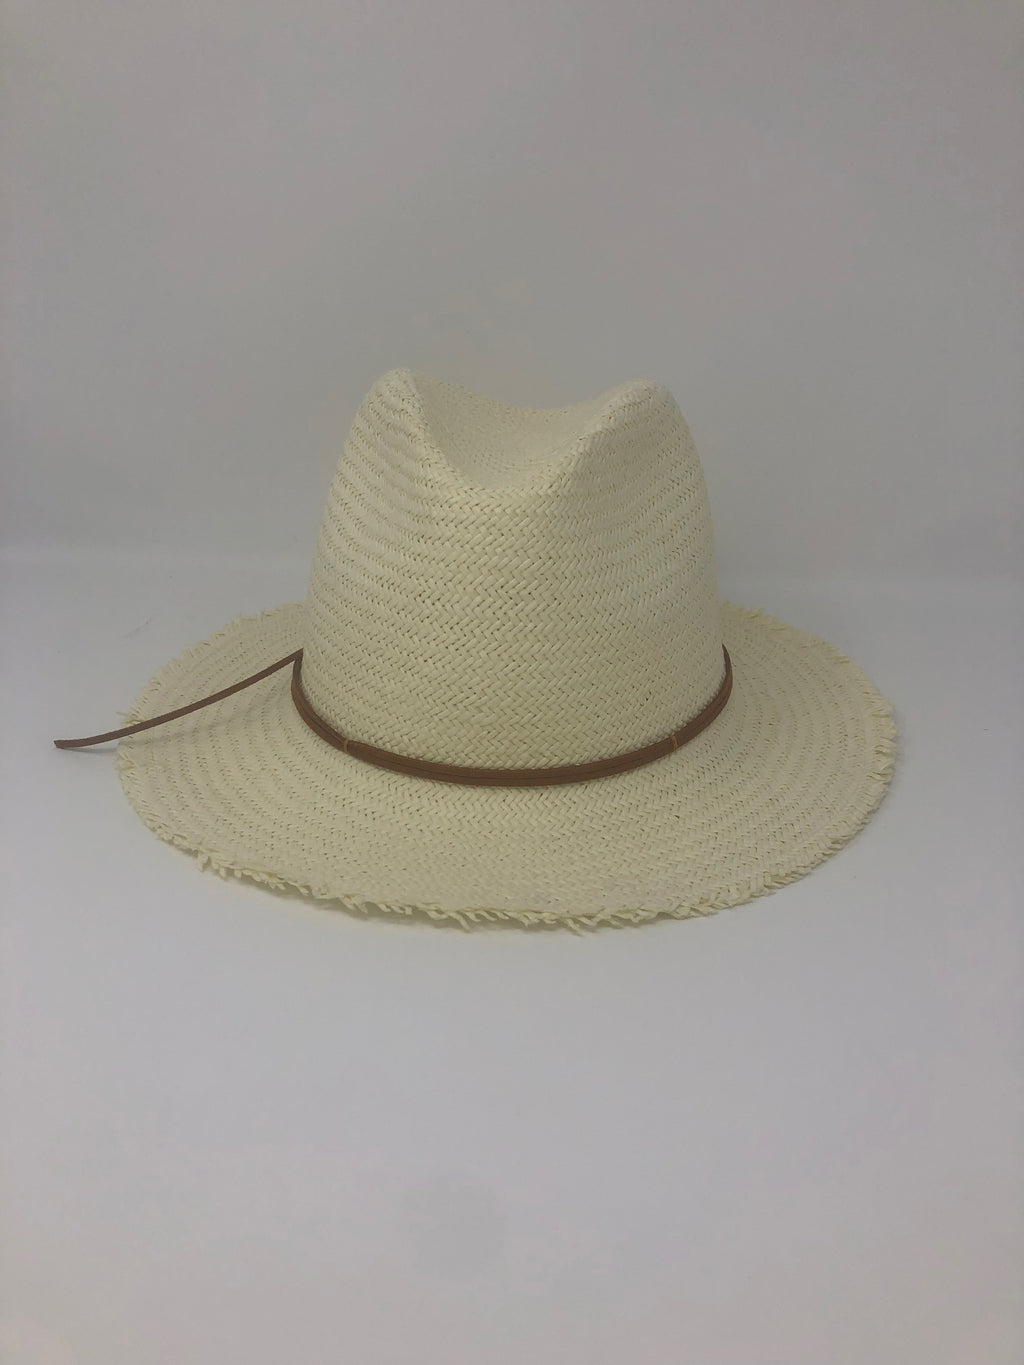 Fringed Ivory Sun Hat